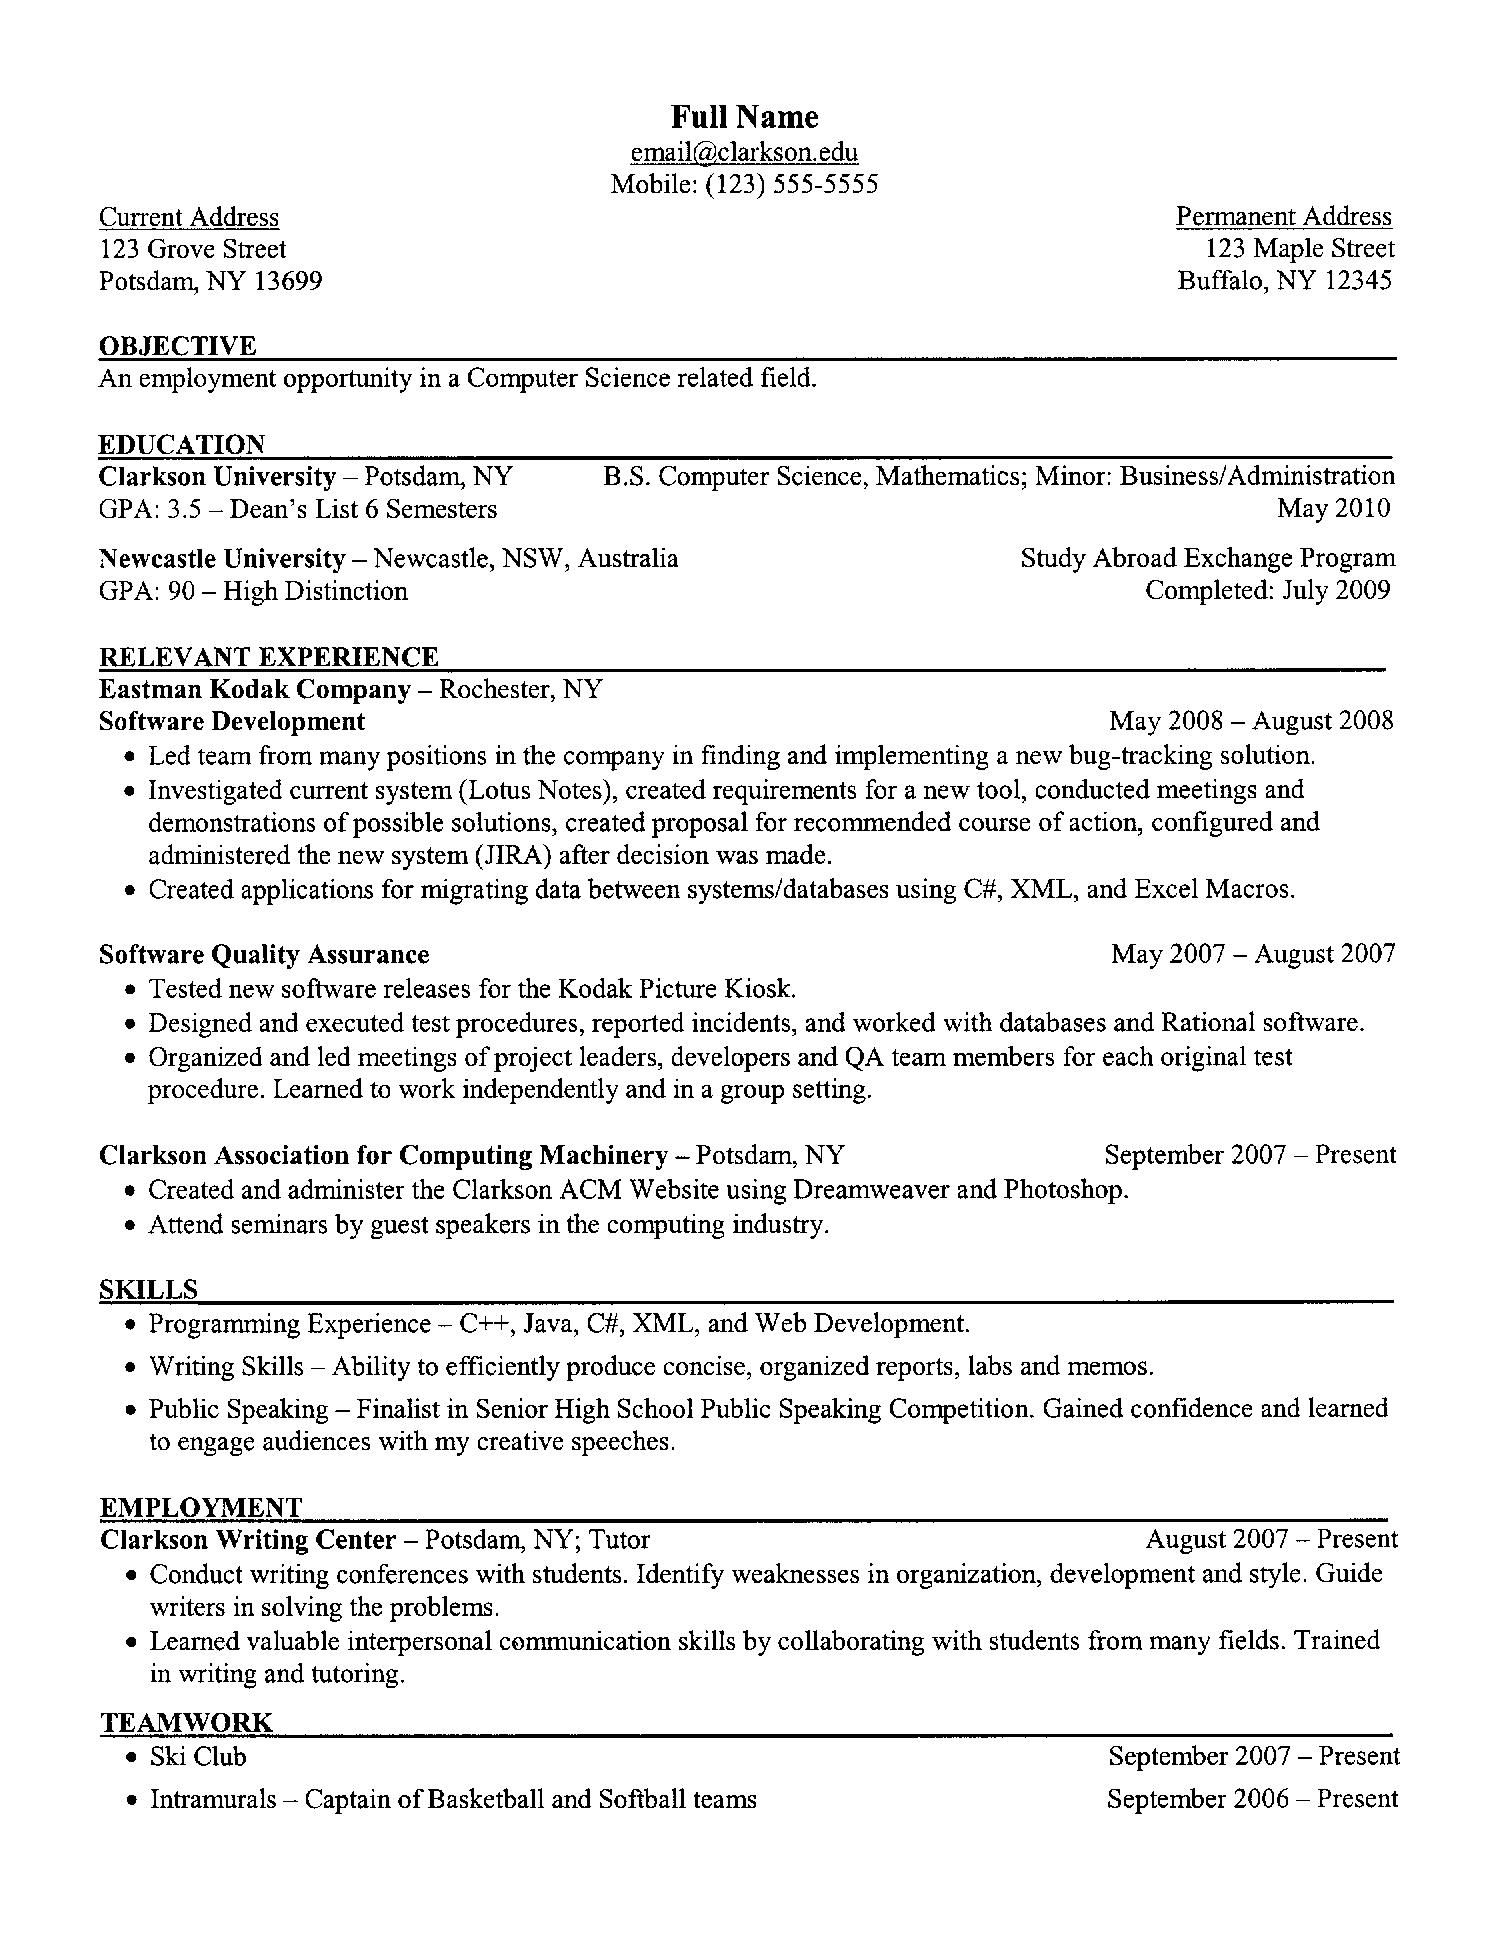 Template Of A Resume Resume Templates University Student Resume Resumetemplates